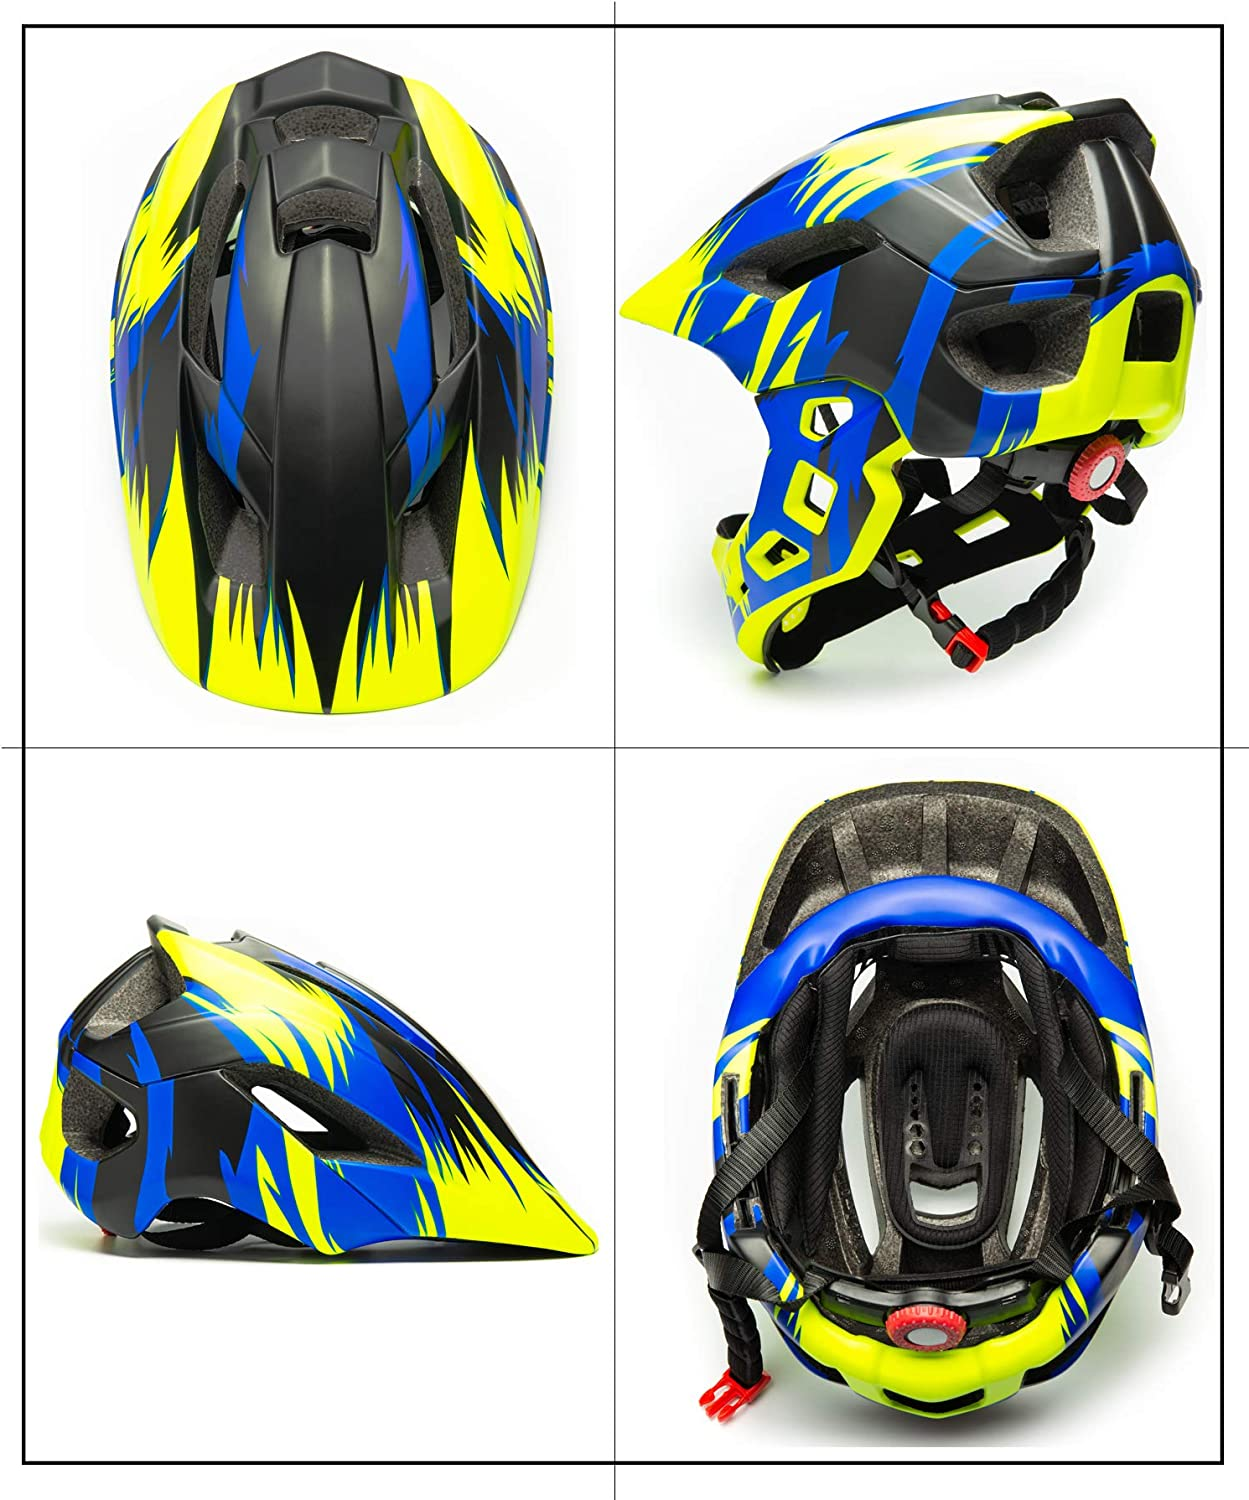 Natuway Kids Bicycle Helmet Detachable Full face Helmet for Cycling Scooter Skateboard BMX Bike Roller-Skate Protective Gear